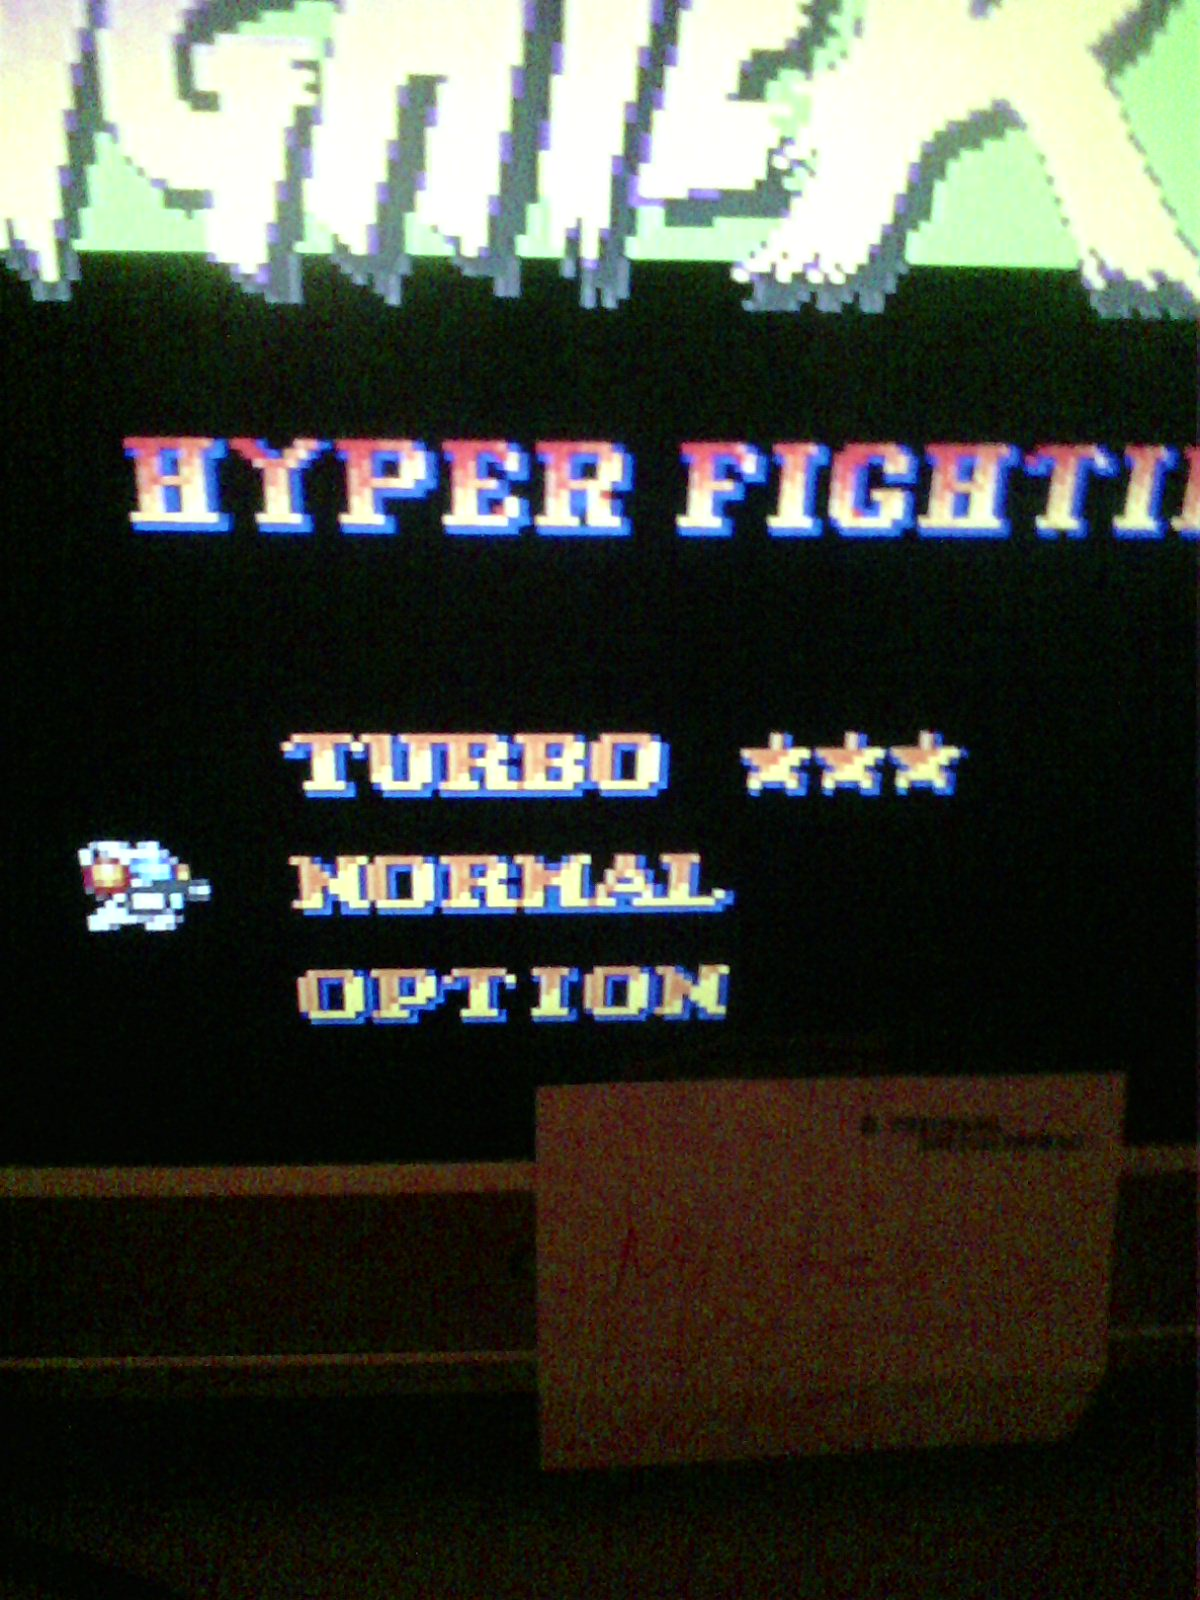 MisterVCS: Street Fighter II Turbo: Hyper Fighting [Normal / Difficulty 1] (SNES/Super Famicom Emulated) 80,300 points on 2018-10-13 13:37:41